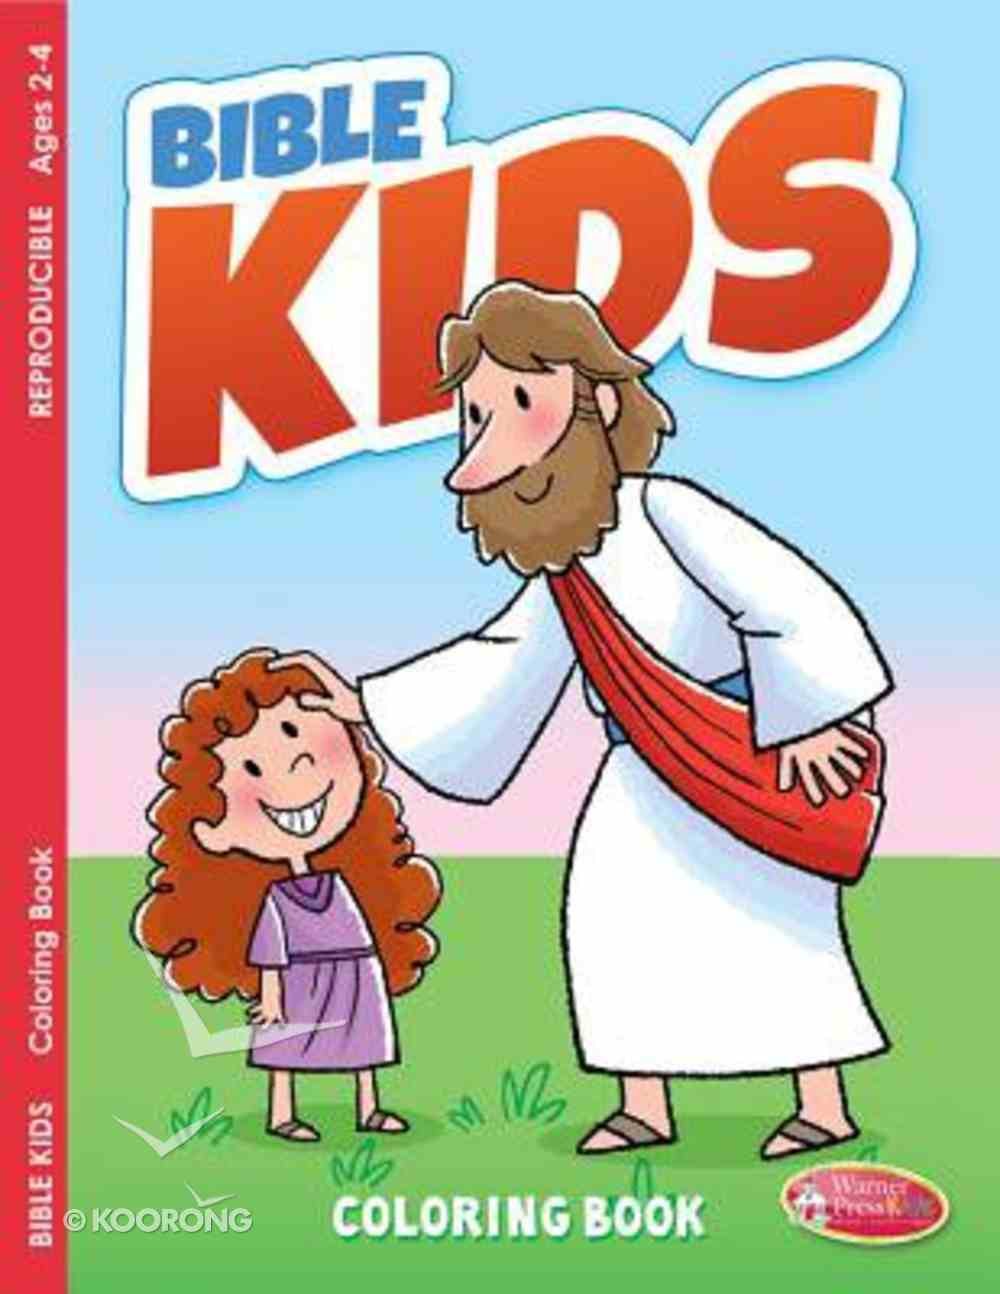 Bible Kids (Ages 2-4, Reproducible) (Warner Press Colouring/activity Under 5's Series) Paperback